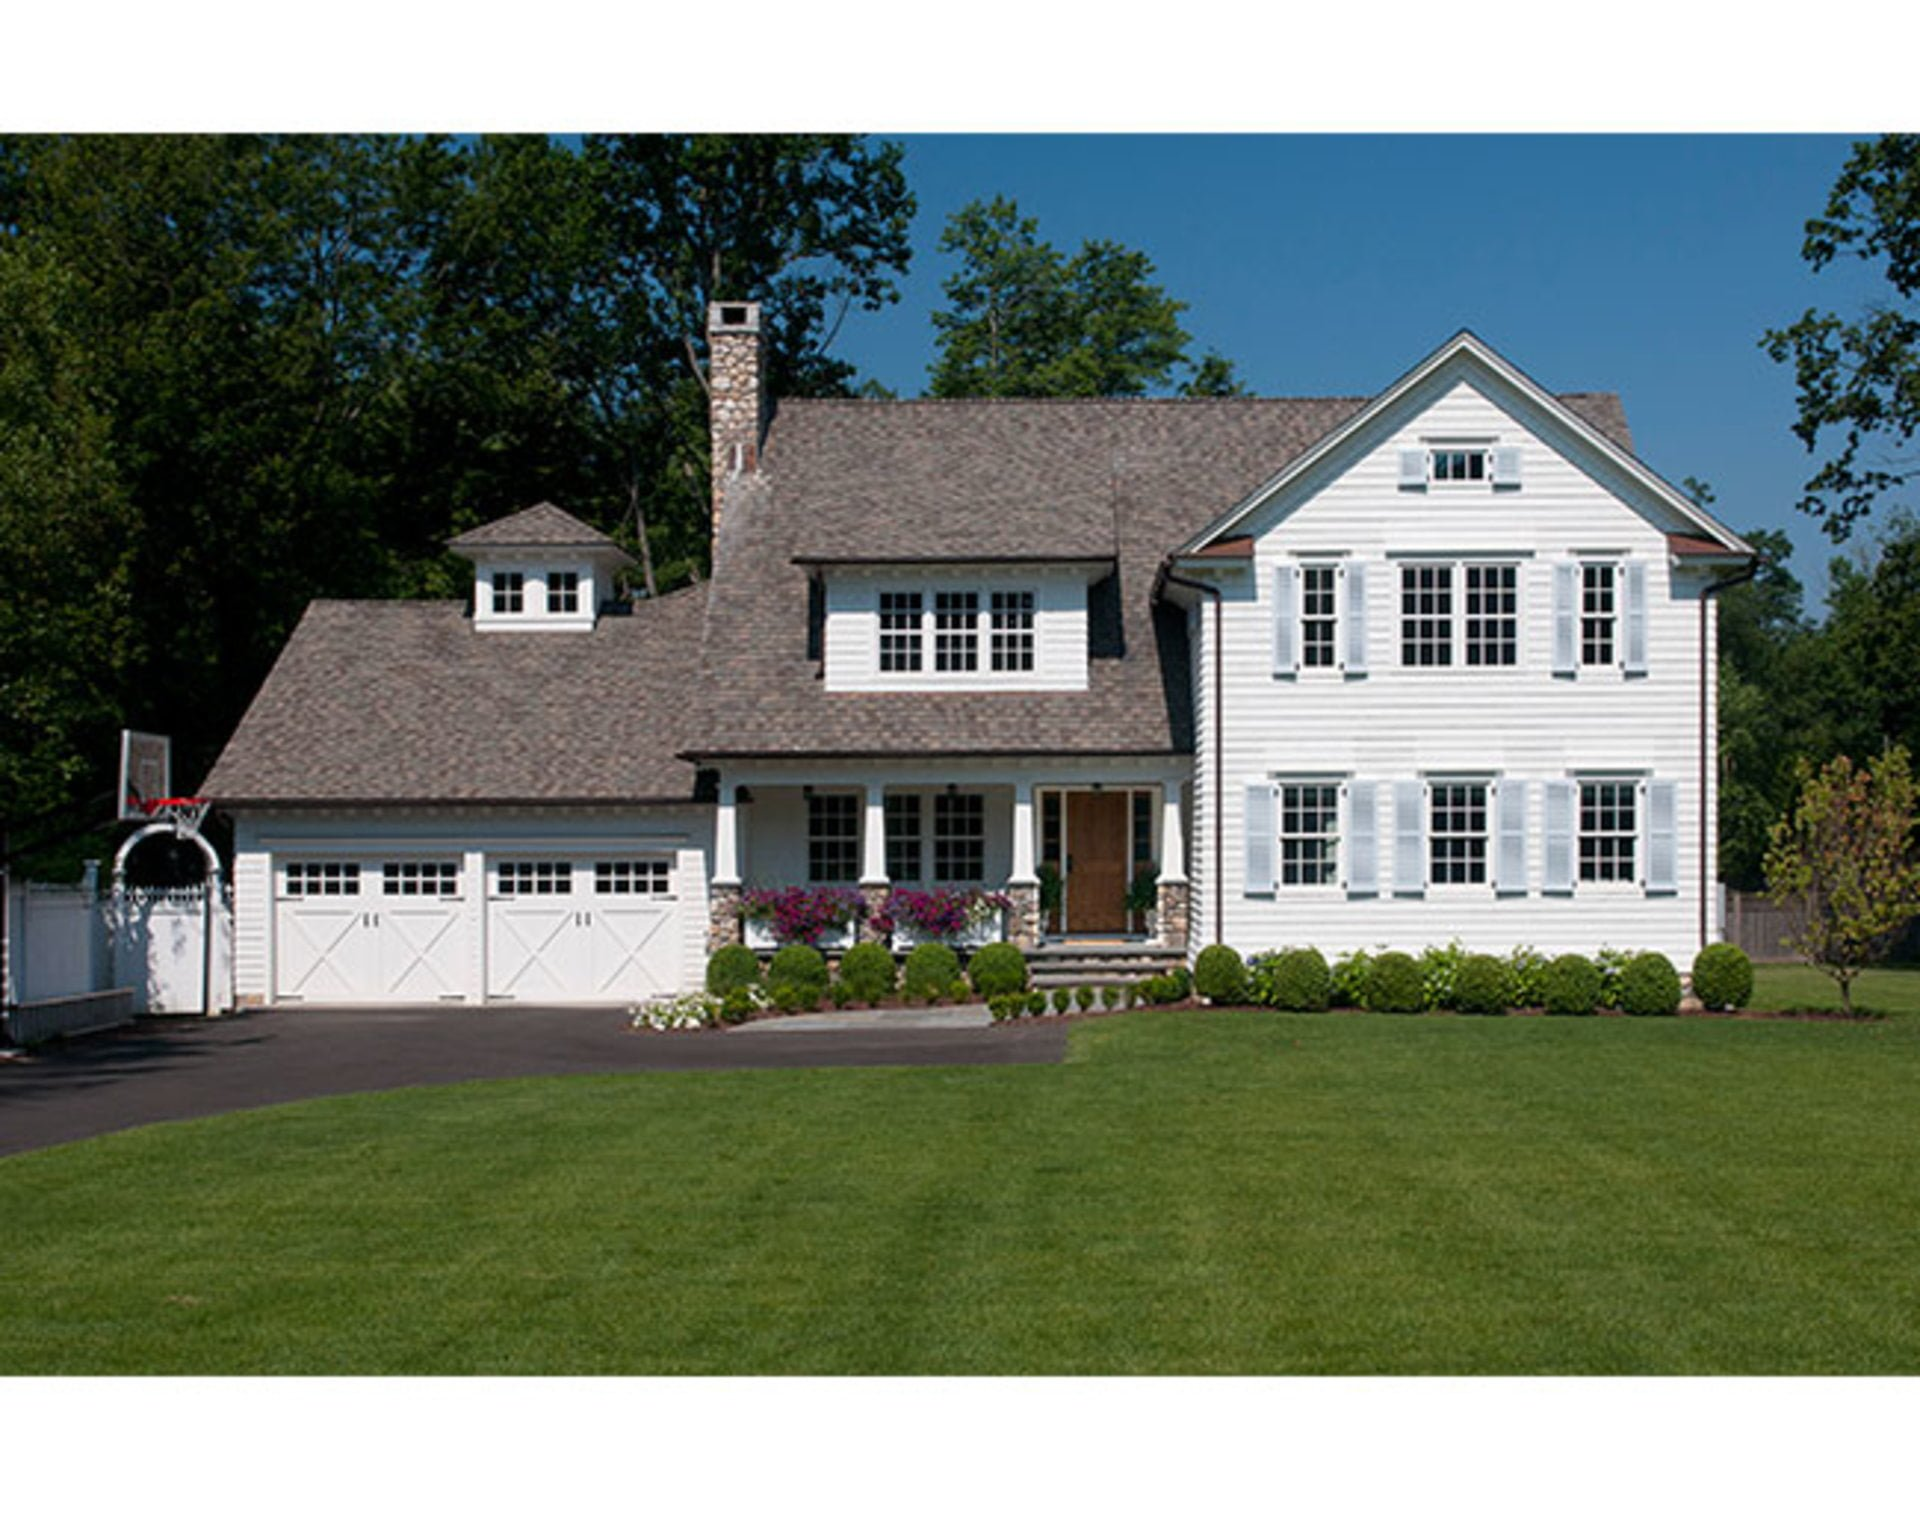 white carriage style garage doors add traditional style to the home